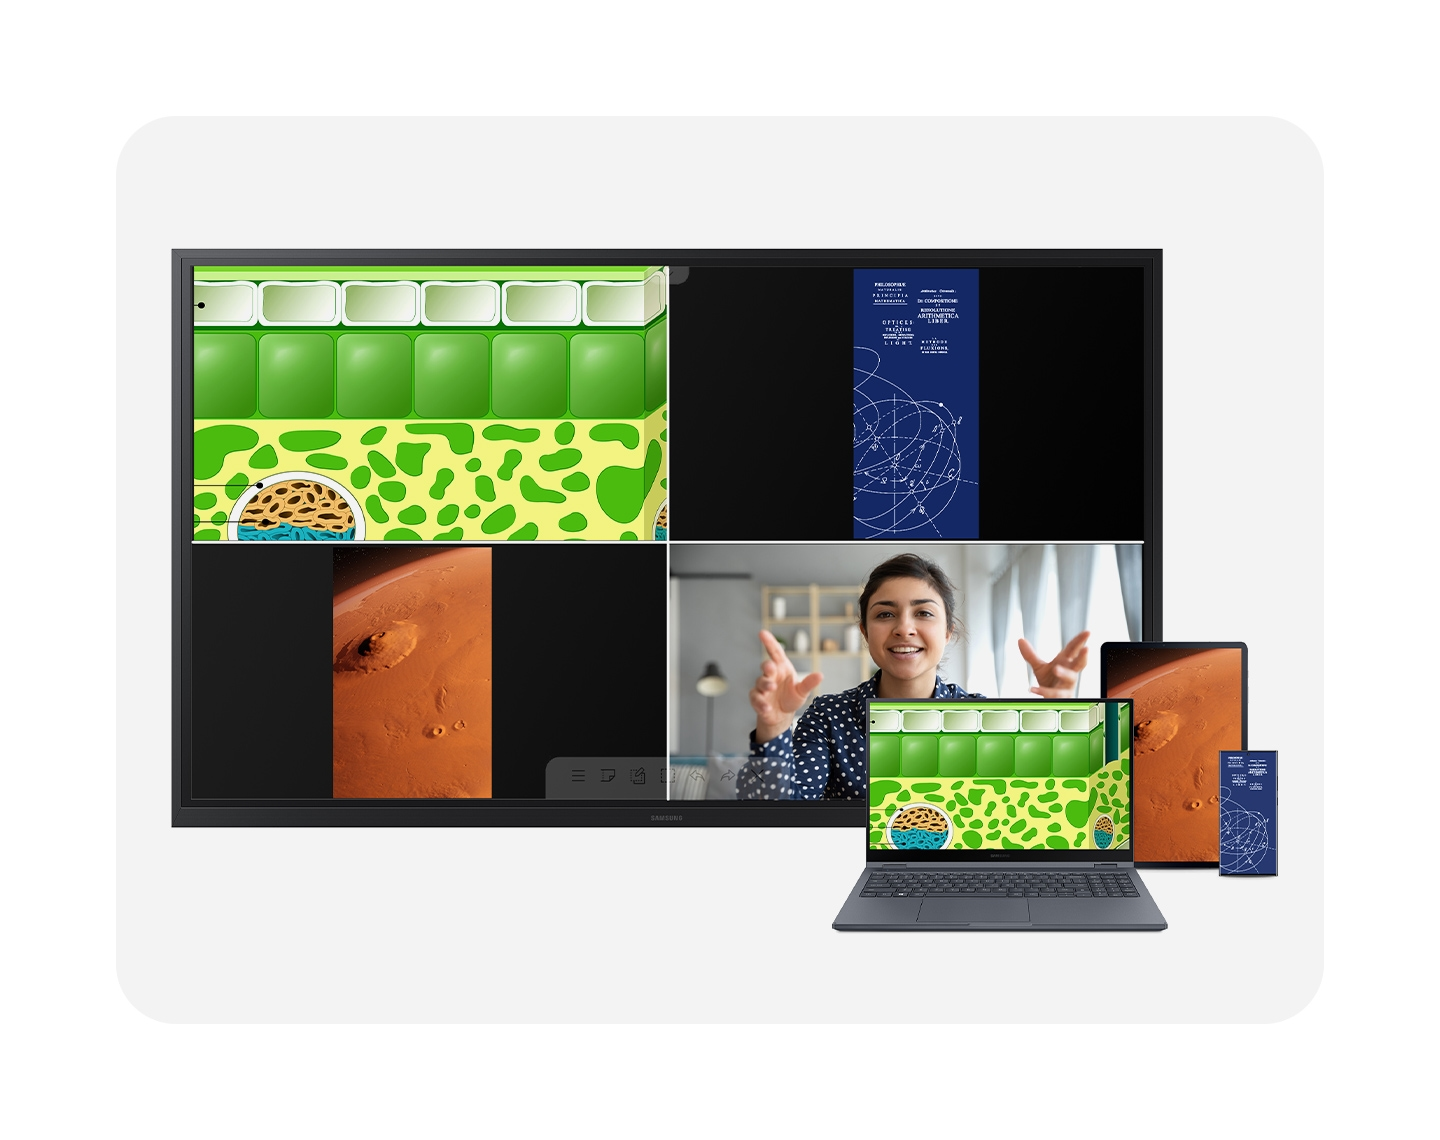 Multi-device casting for enhanced collaboration